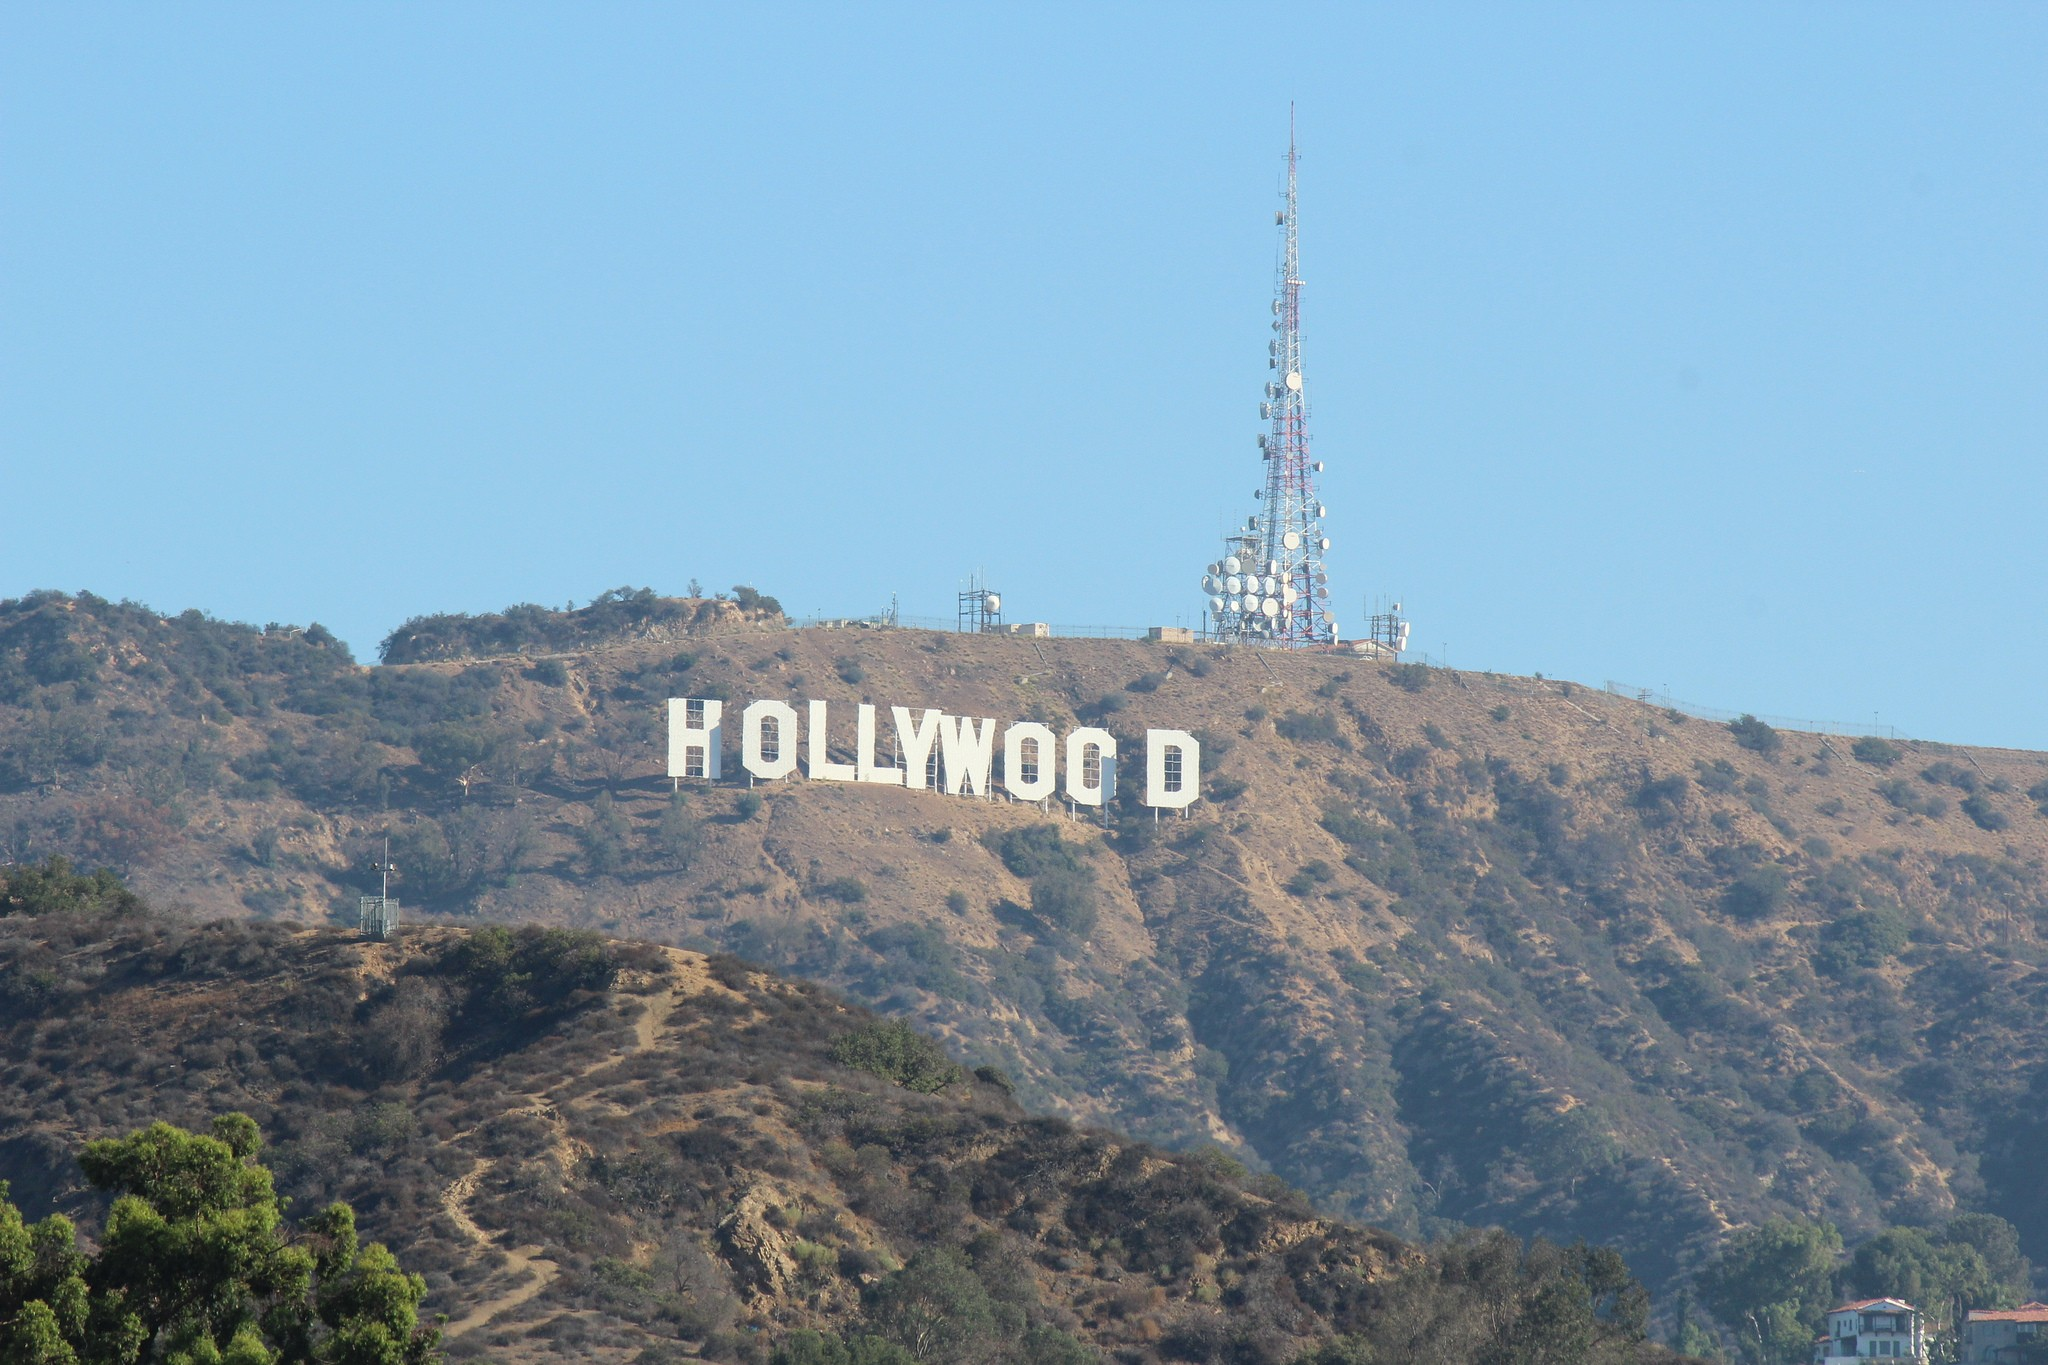 Sinal de Hollywood em Los Angeles, na Califórnia (Foto: Flickr/Shinya Suzuki)